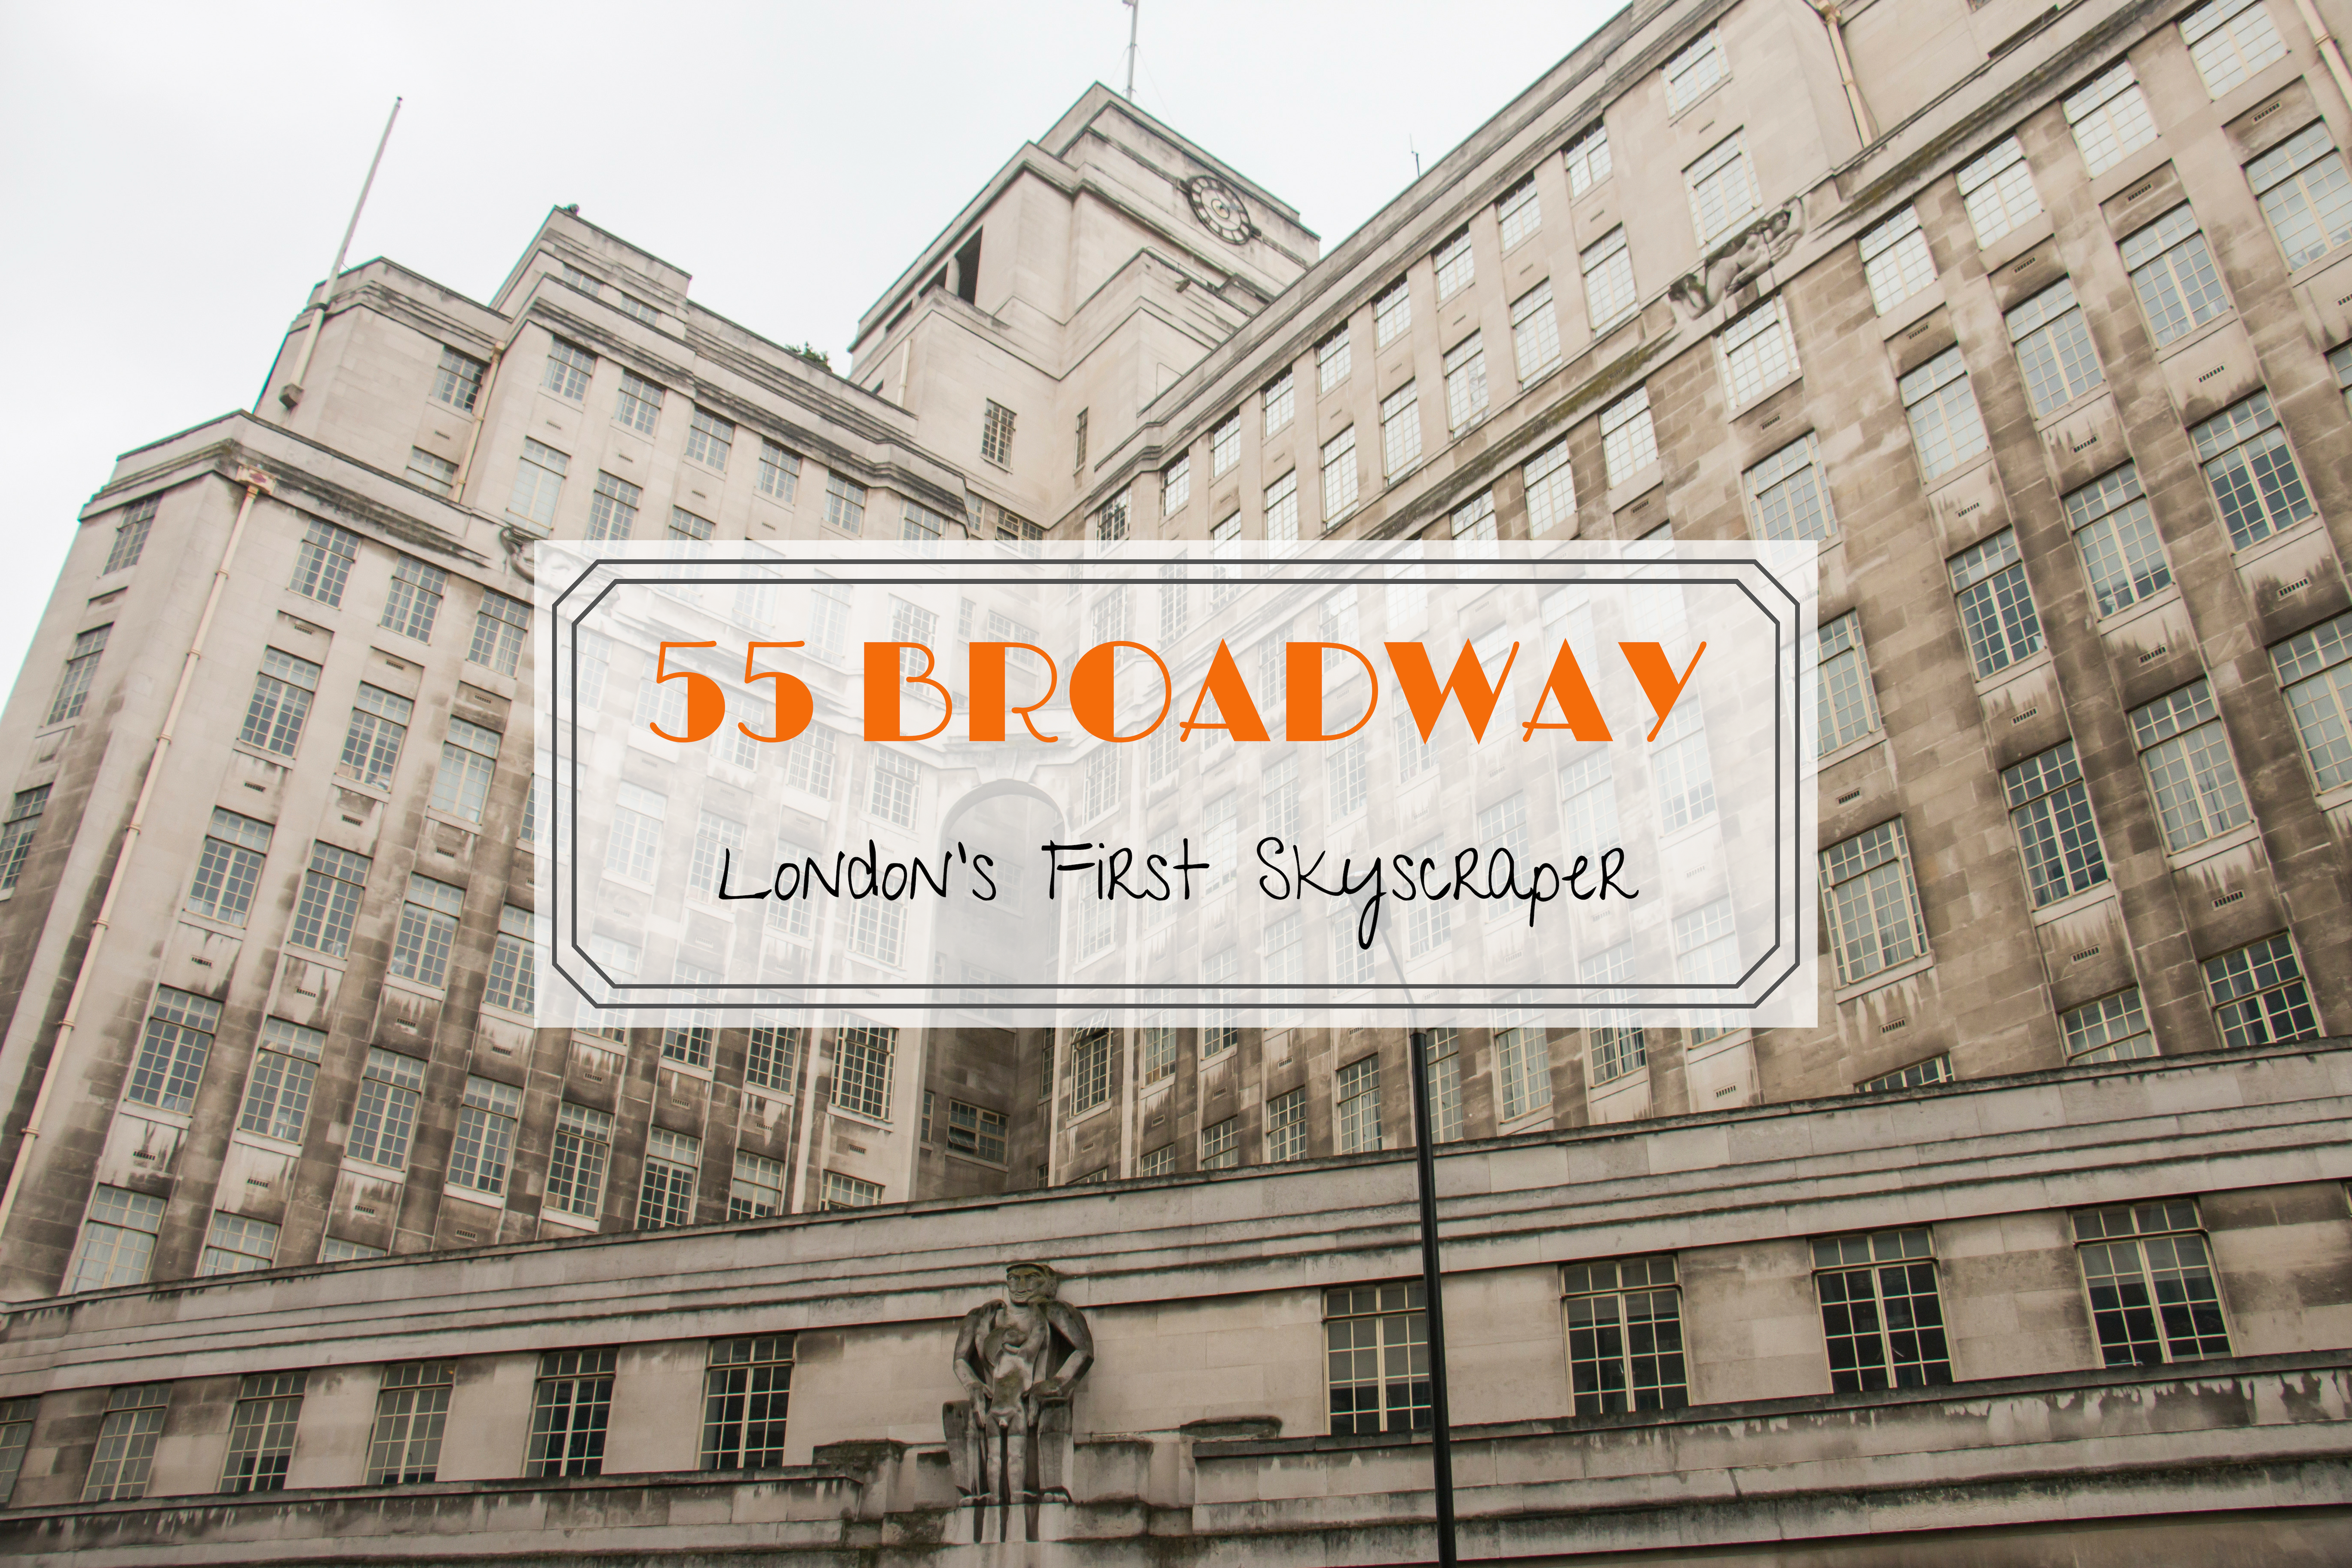 55 BROADWAY London's First Skyscraper